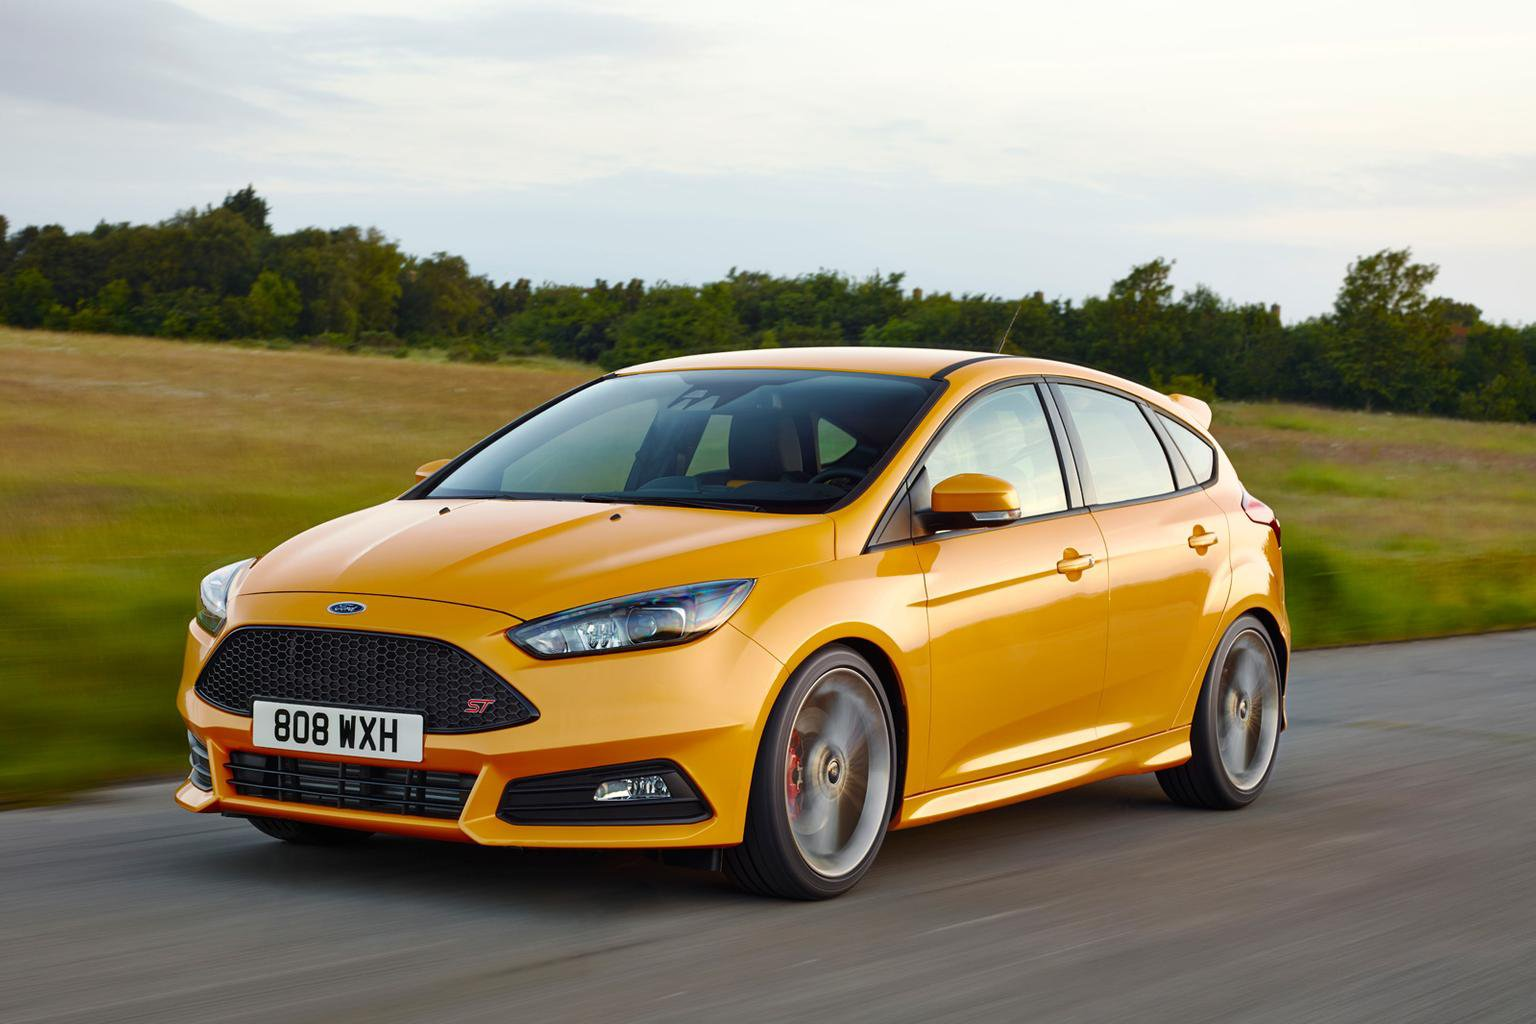 Deal of the Day: Ford Focus ST